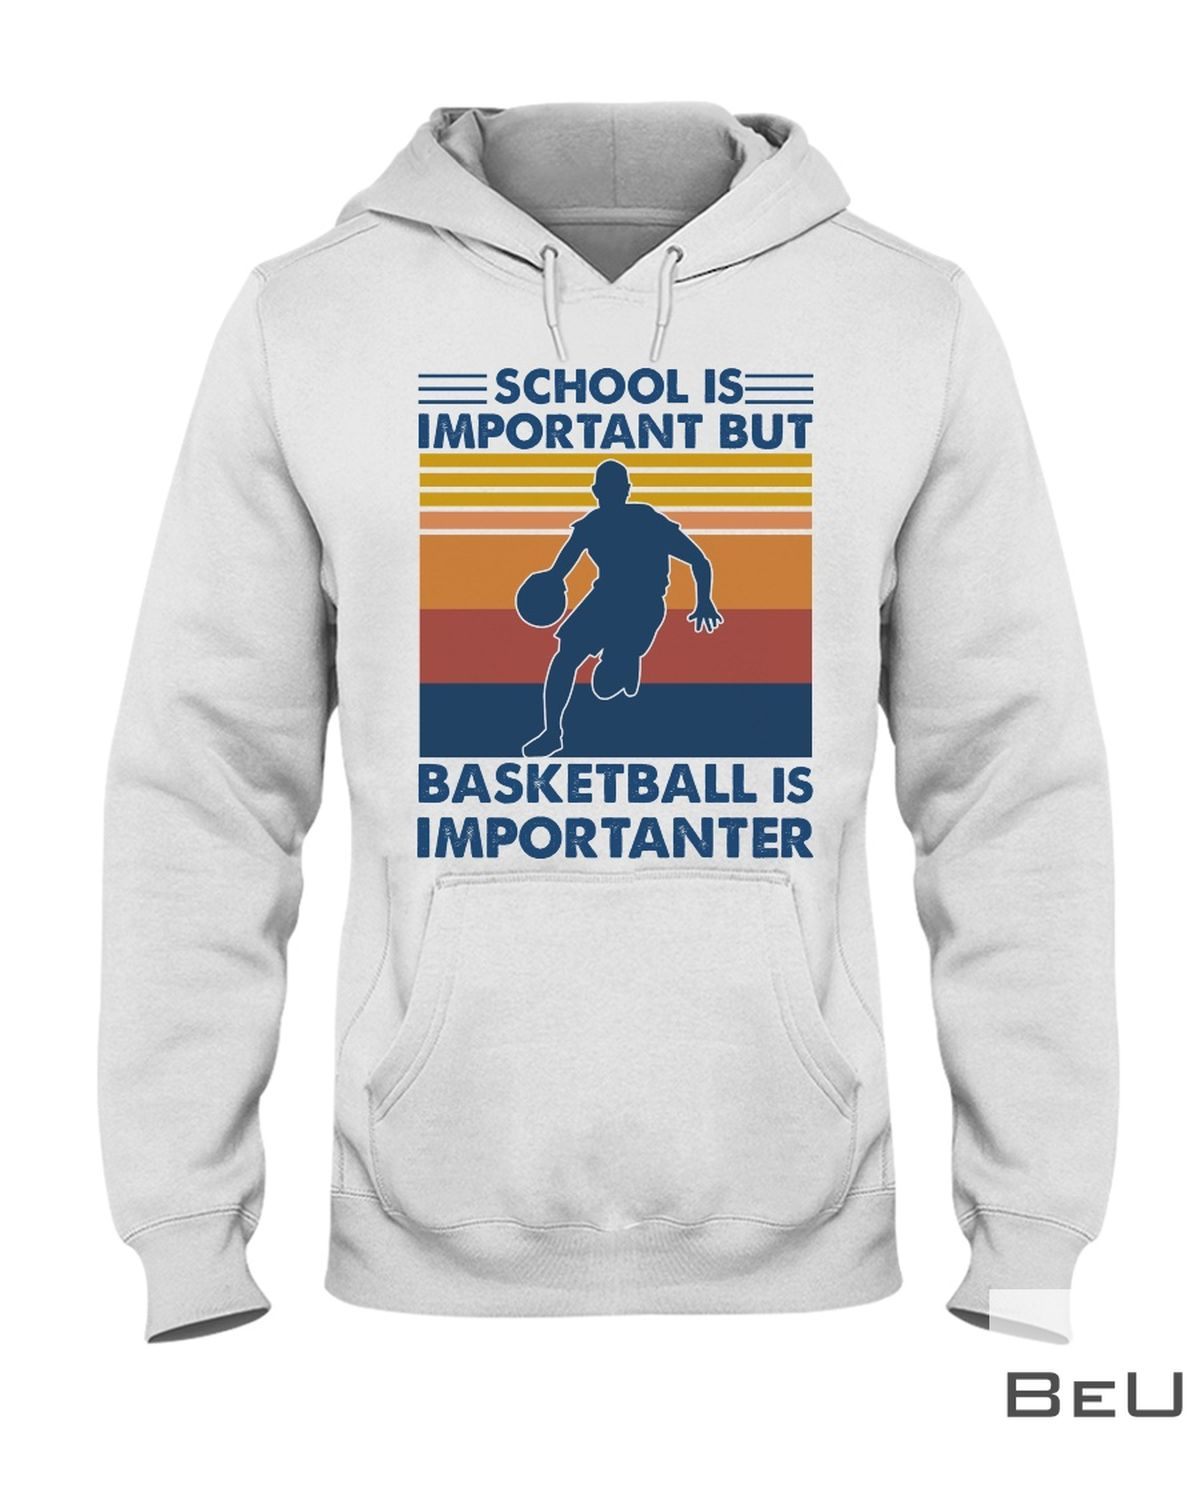 School Is Important But Basketball is Importanter Shirtx